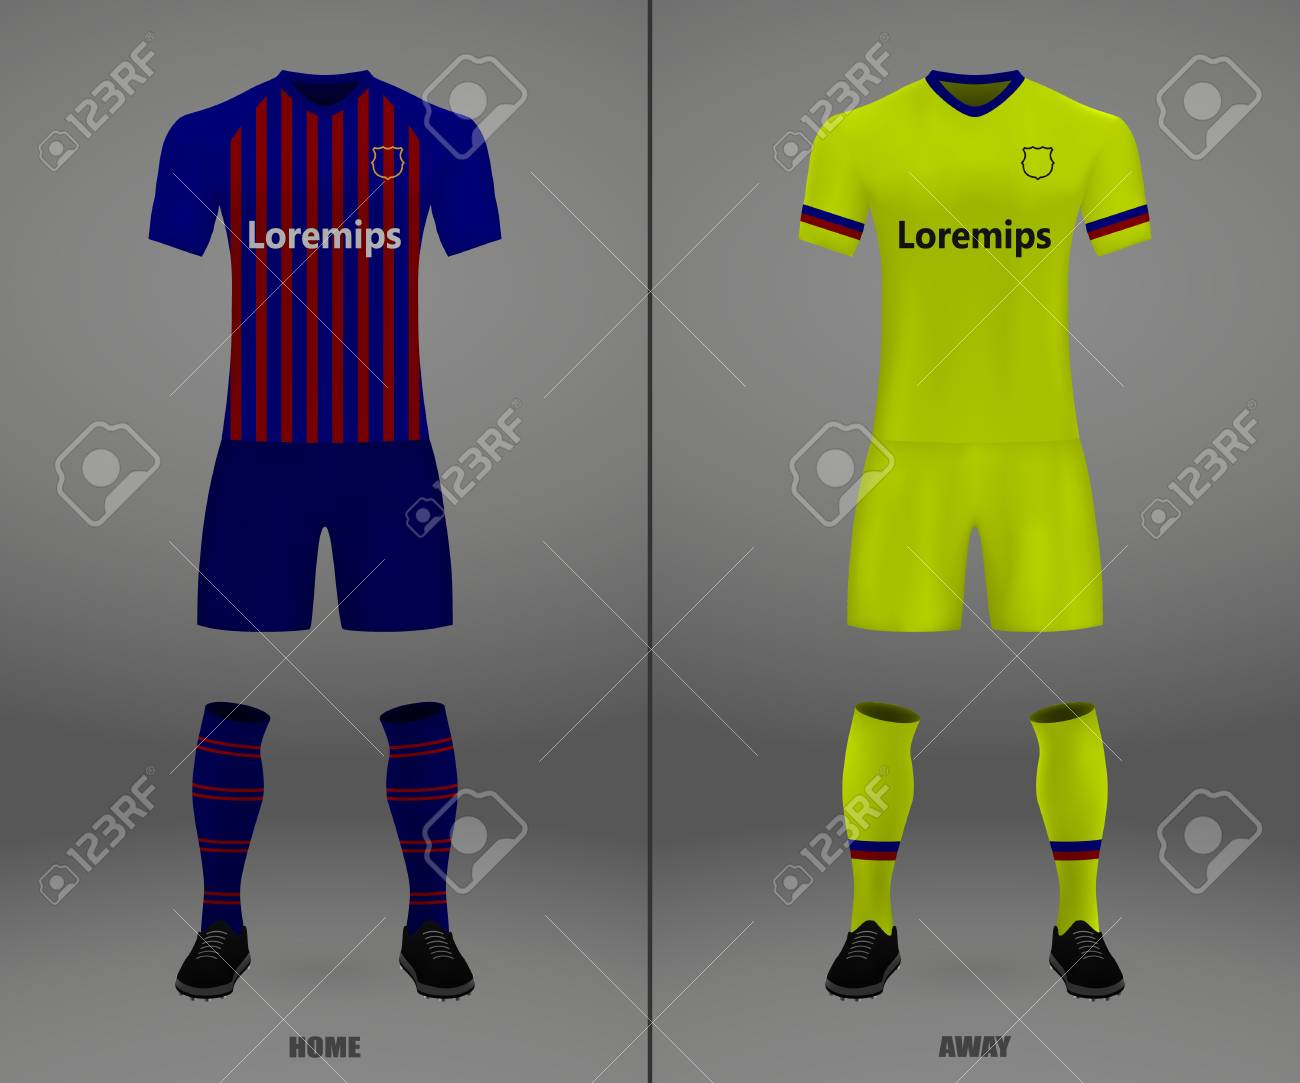 0ed50a59497 football kit Barcelona 2018-19, shirt template for soccer jersey. Vector  illustration Stock